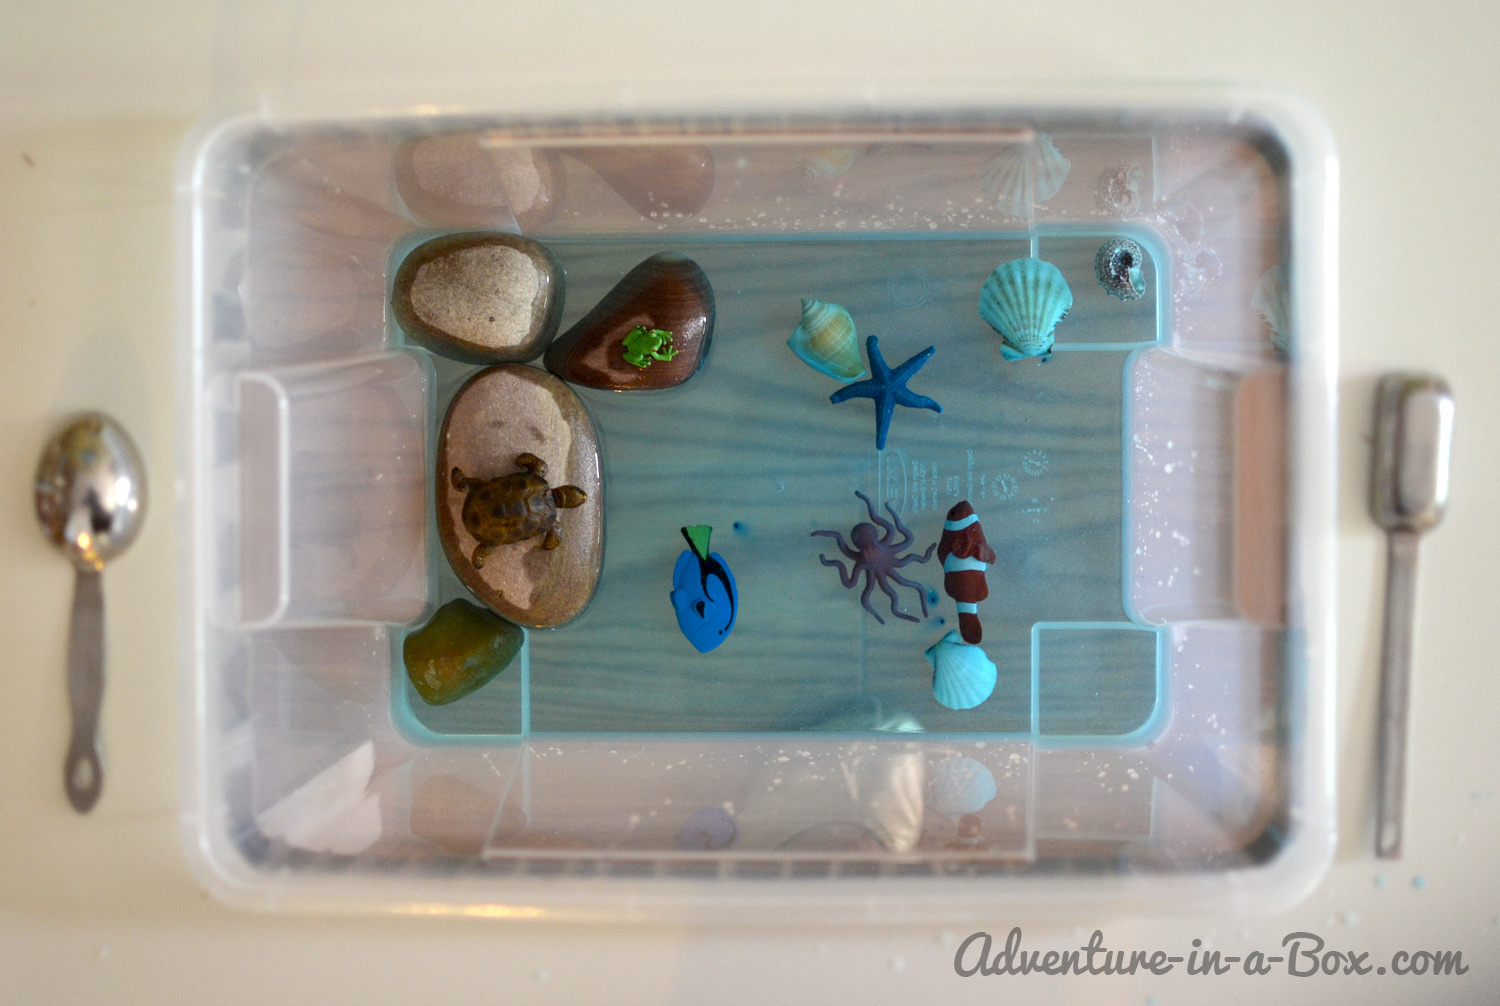 Sea Life for Toddlers: Books and Games